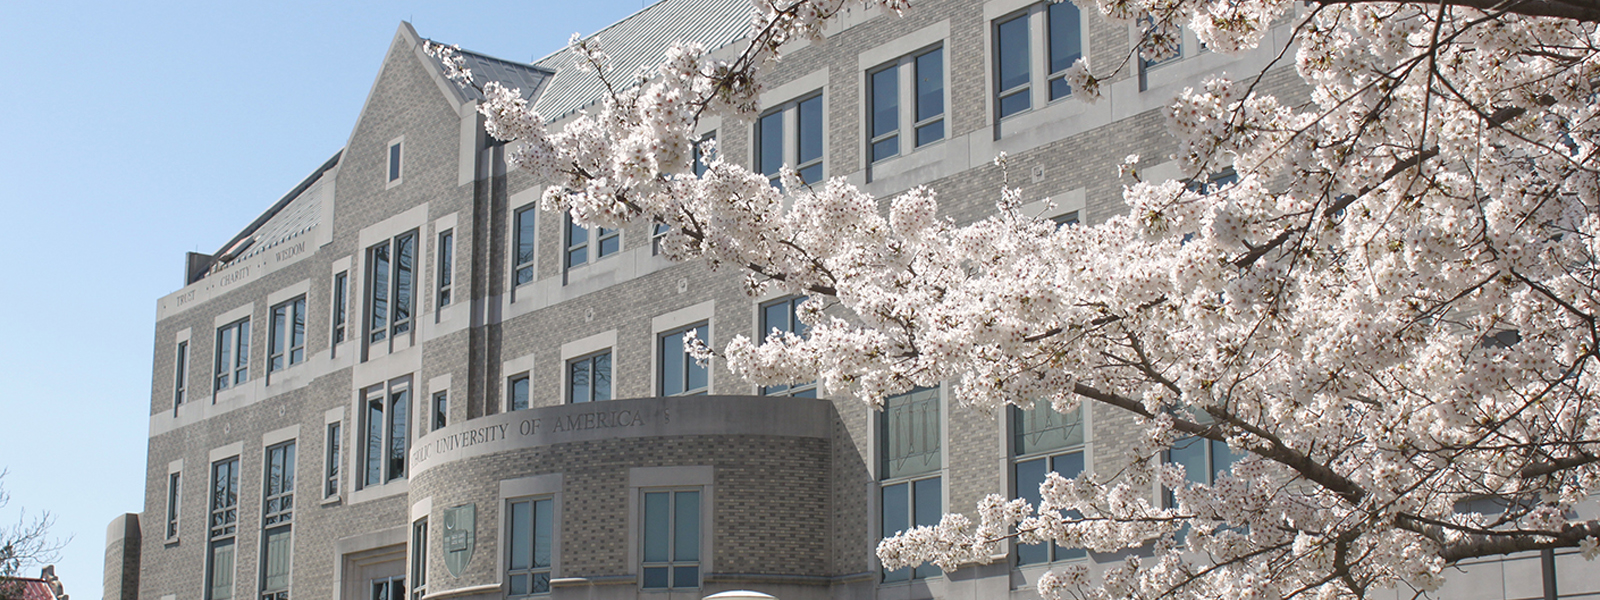 Law School entrance with Cherry Blossoms in bloom